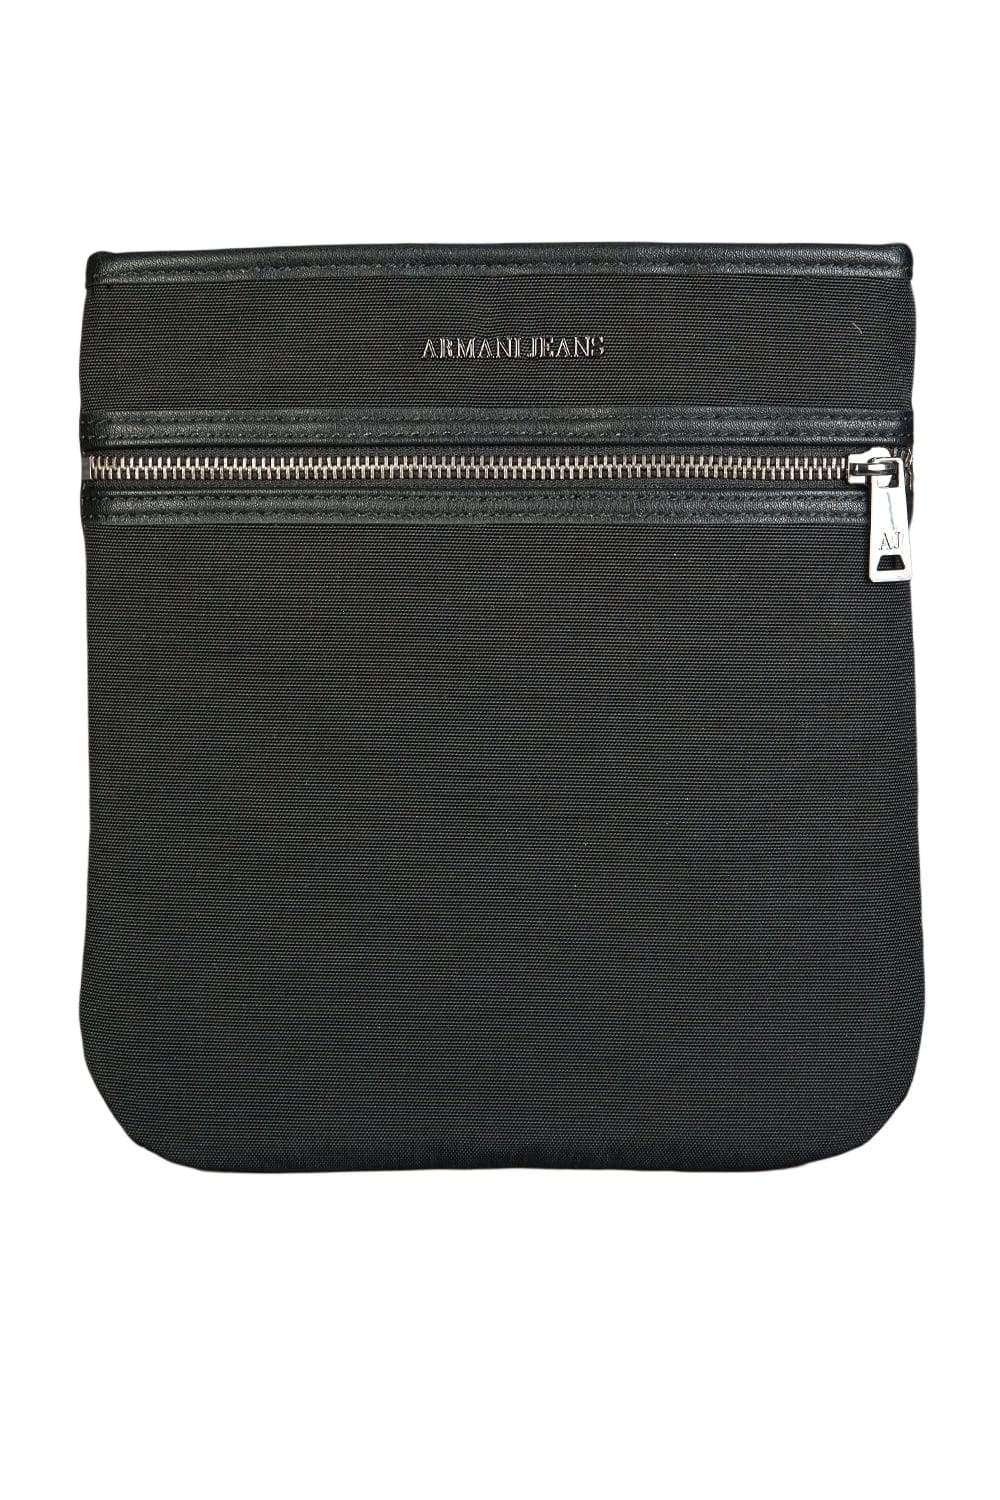 c6302aaa4f81 Armani Jeans Messenger Bag C6277 S8 - Accessories from Sage Clothing UK